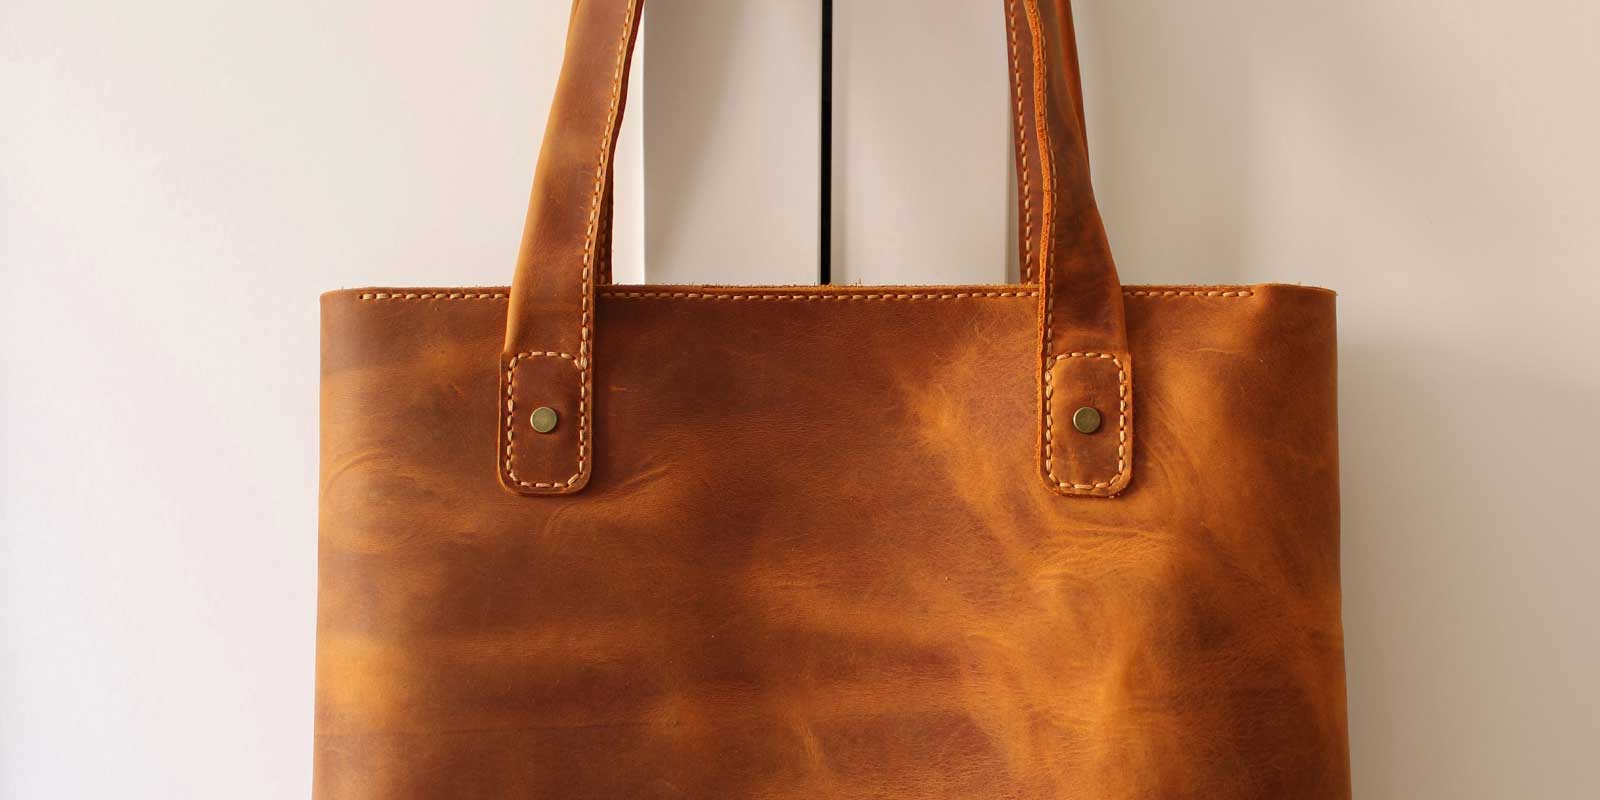 What Is The Difference Between A Tote And A Shoulder Bag?